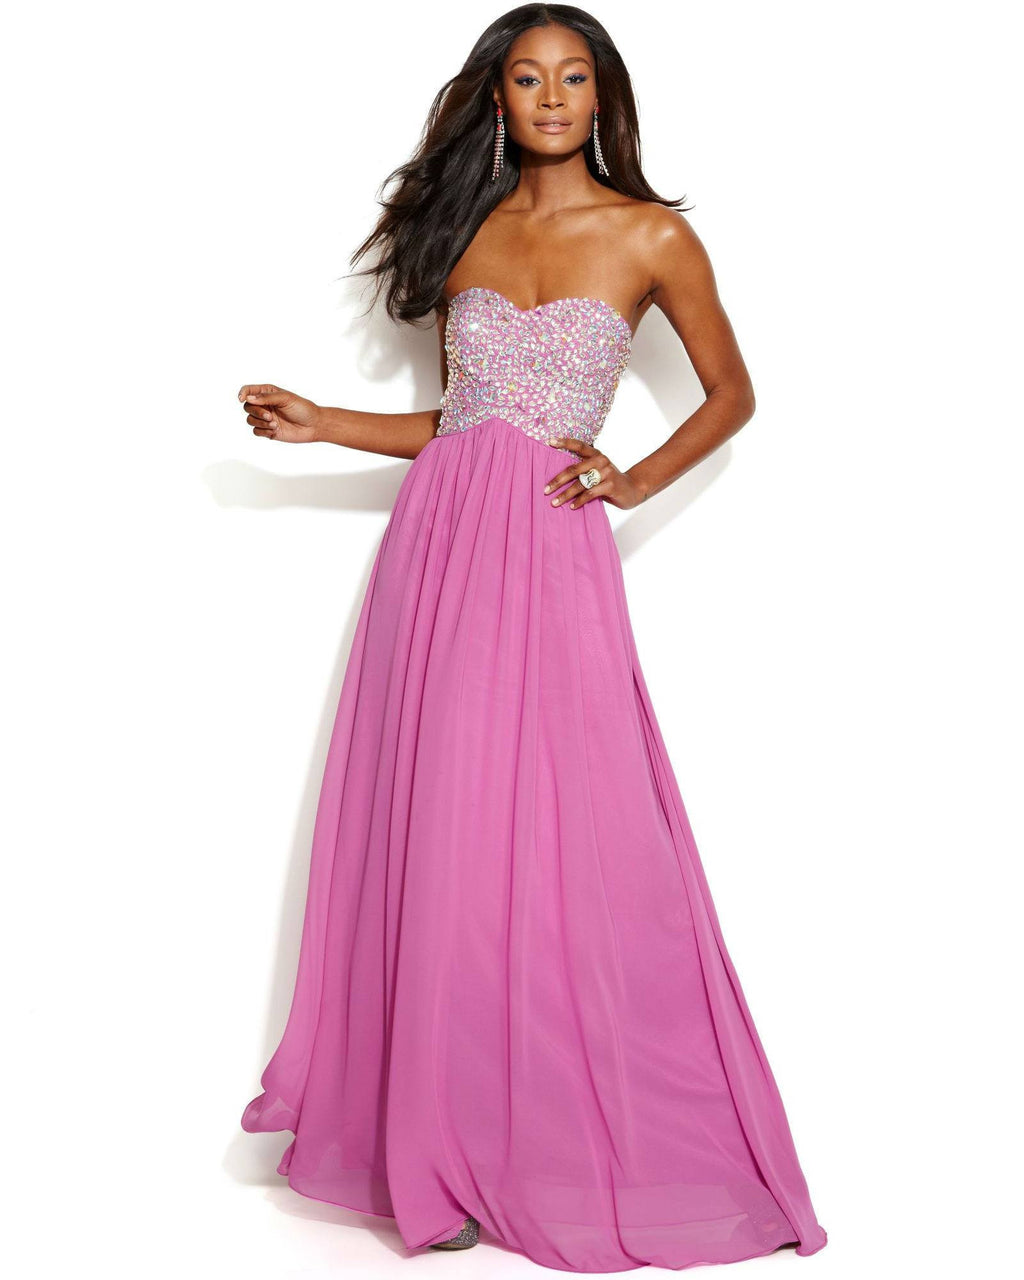 Xscape Strapless Embellished Bodice Cutout Gown-XSCAPE EVENINGS-Fashionbarn shop